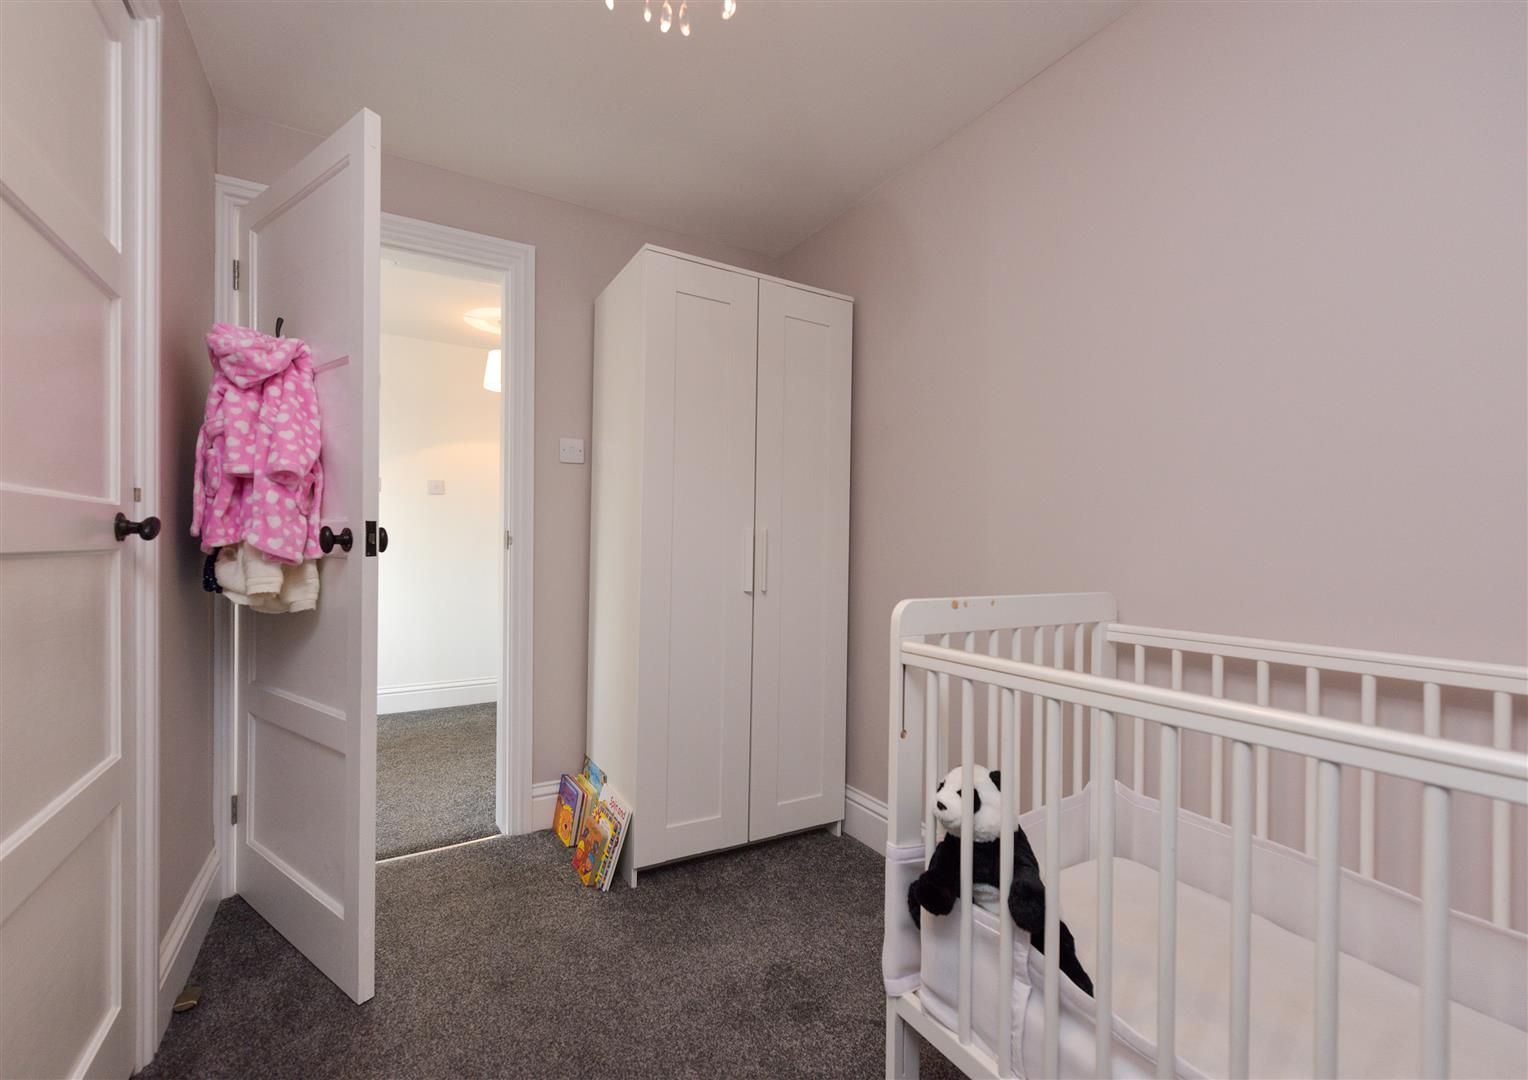 3 bed house for sale in Clent  - Property Image 16